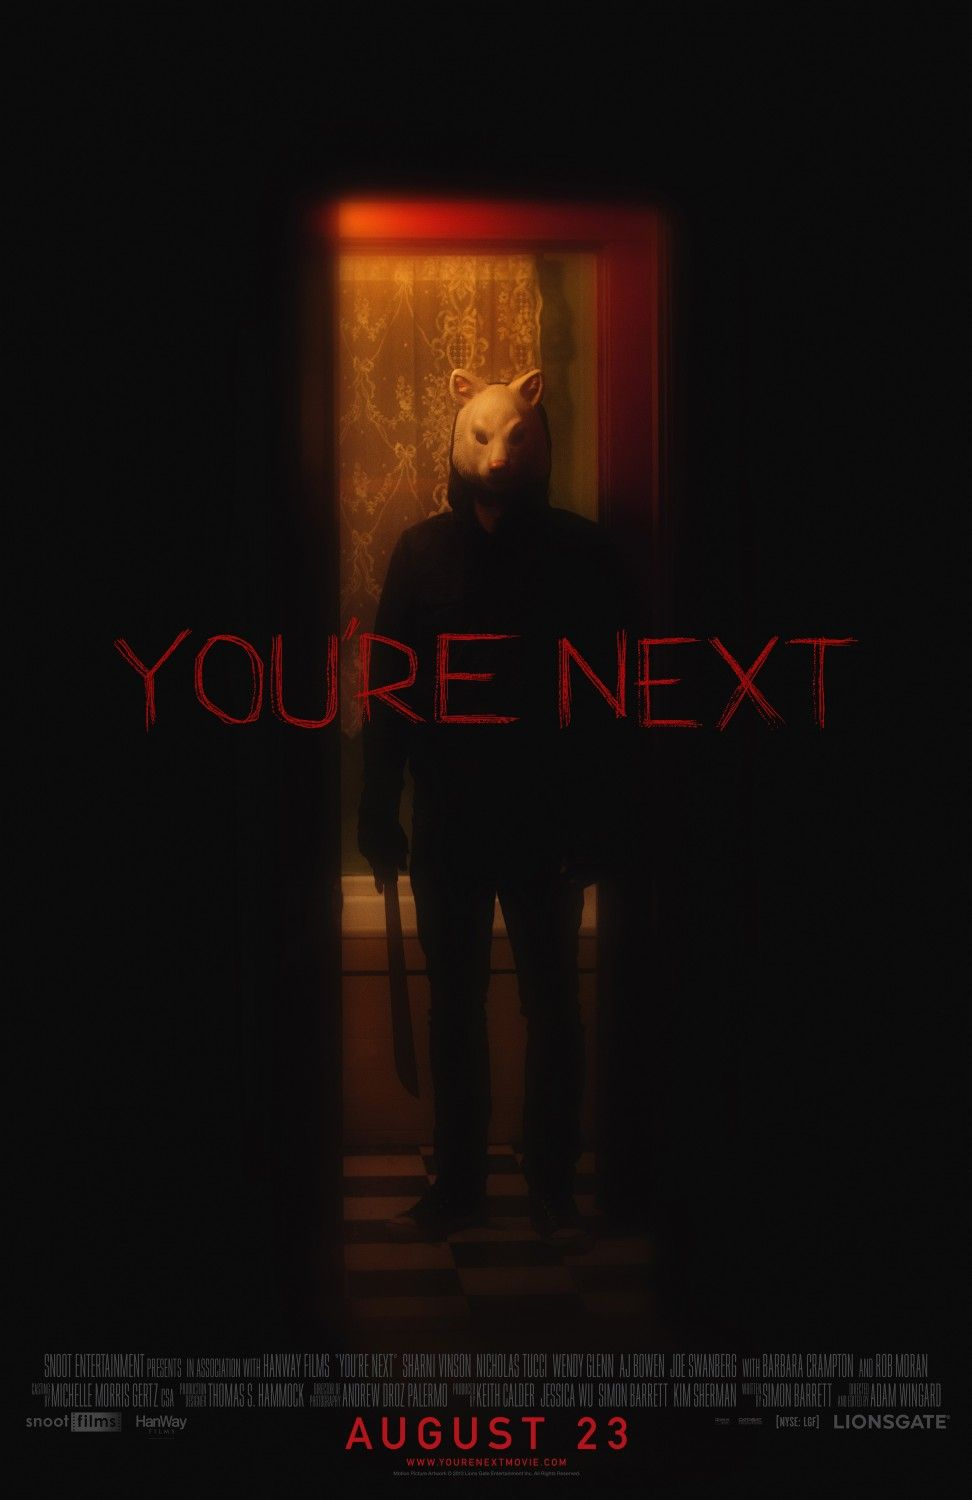 ??n L??t M�y - You are Next